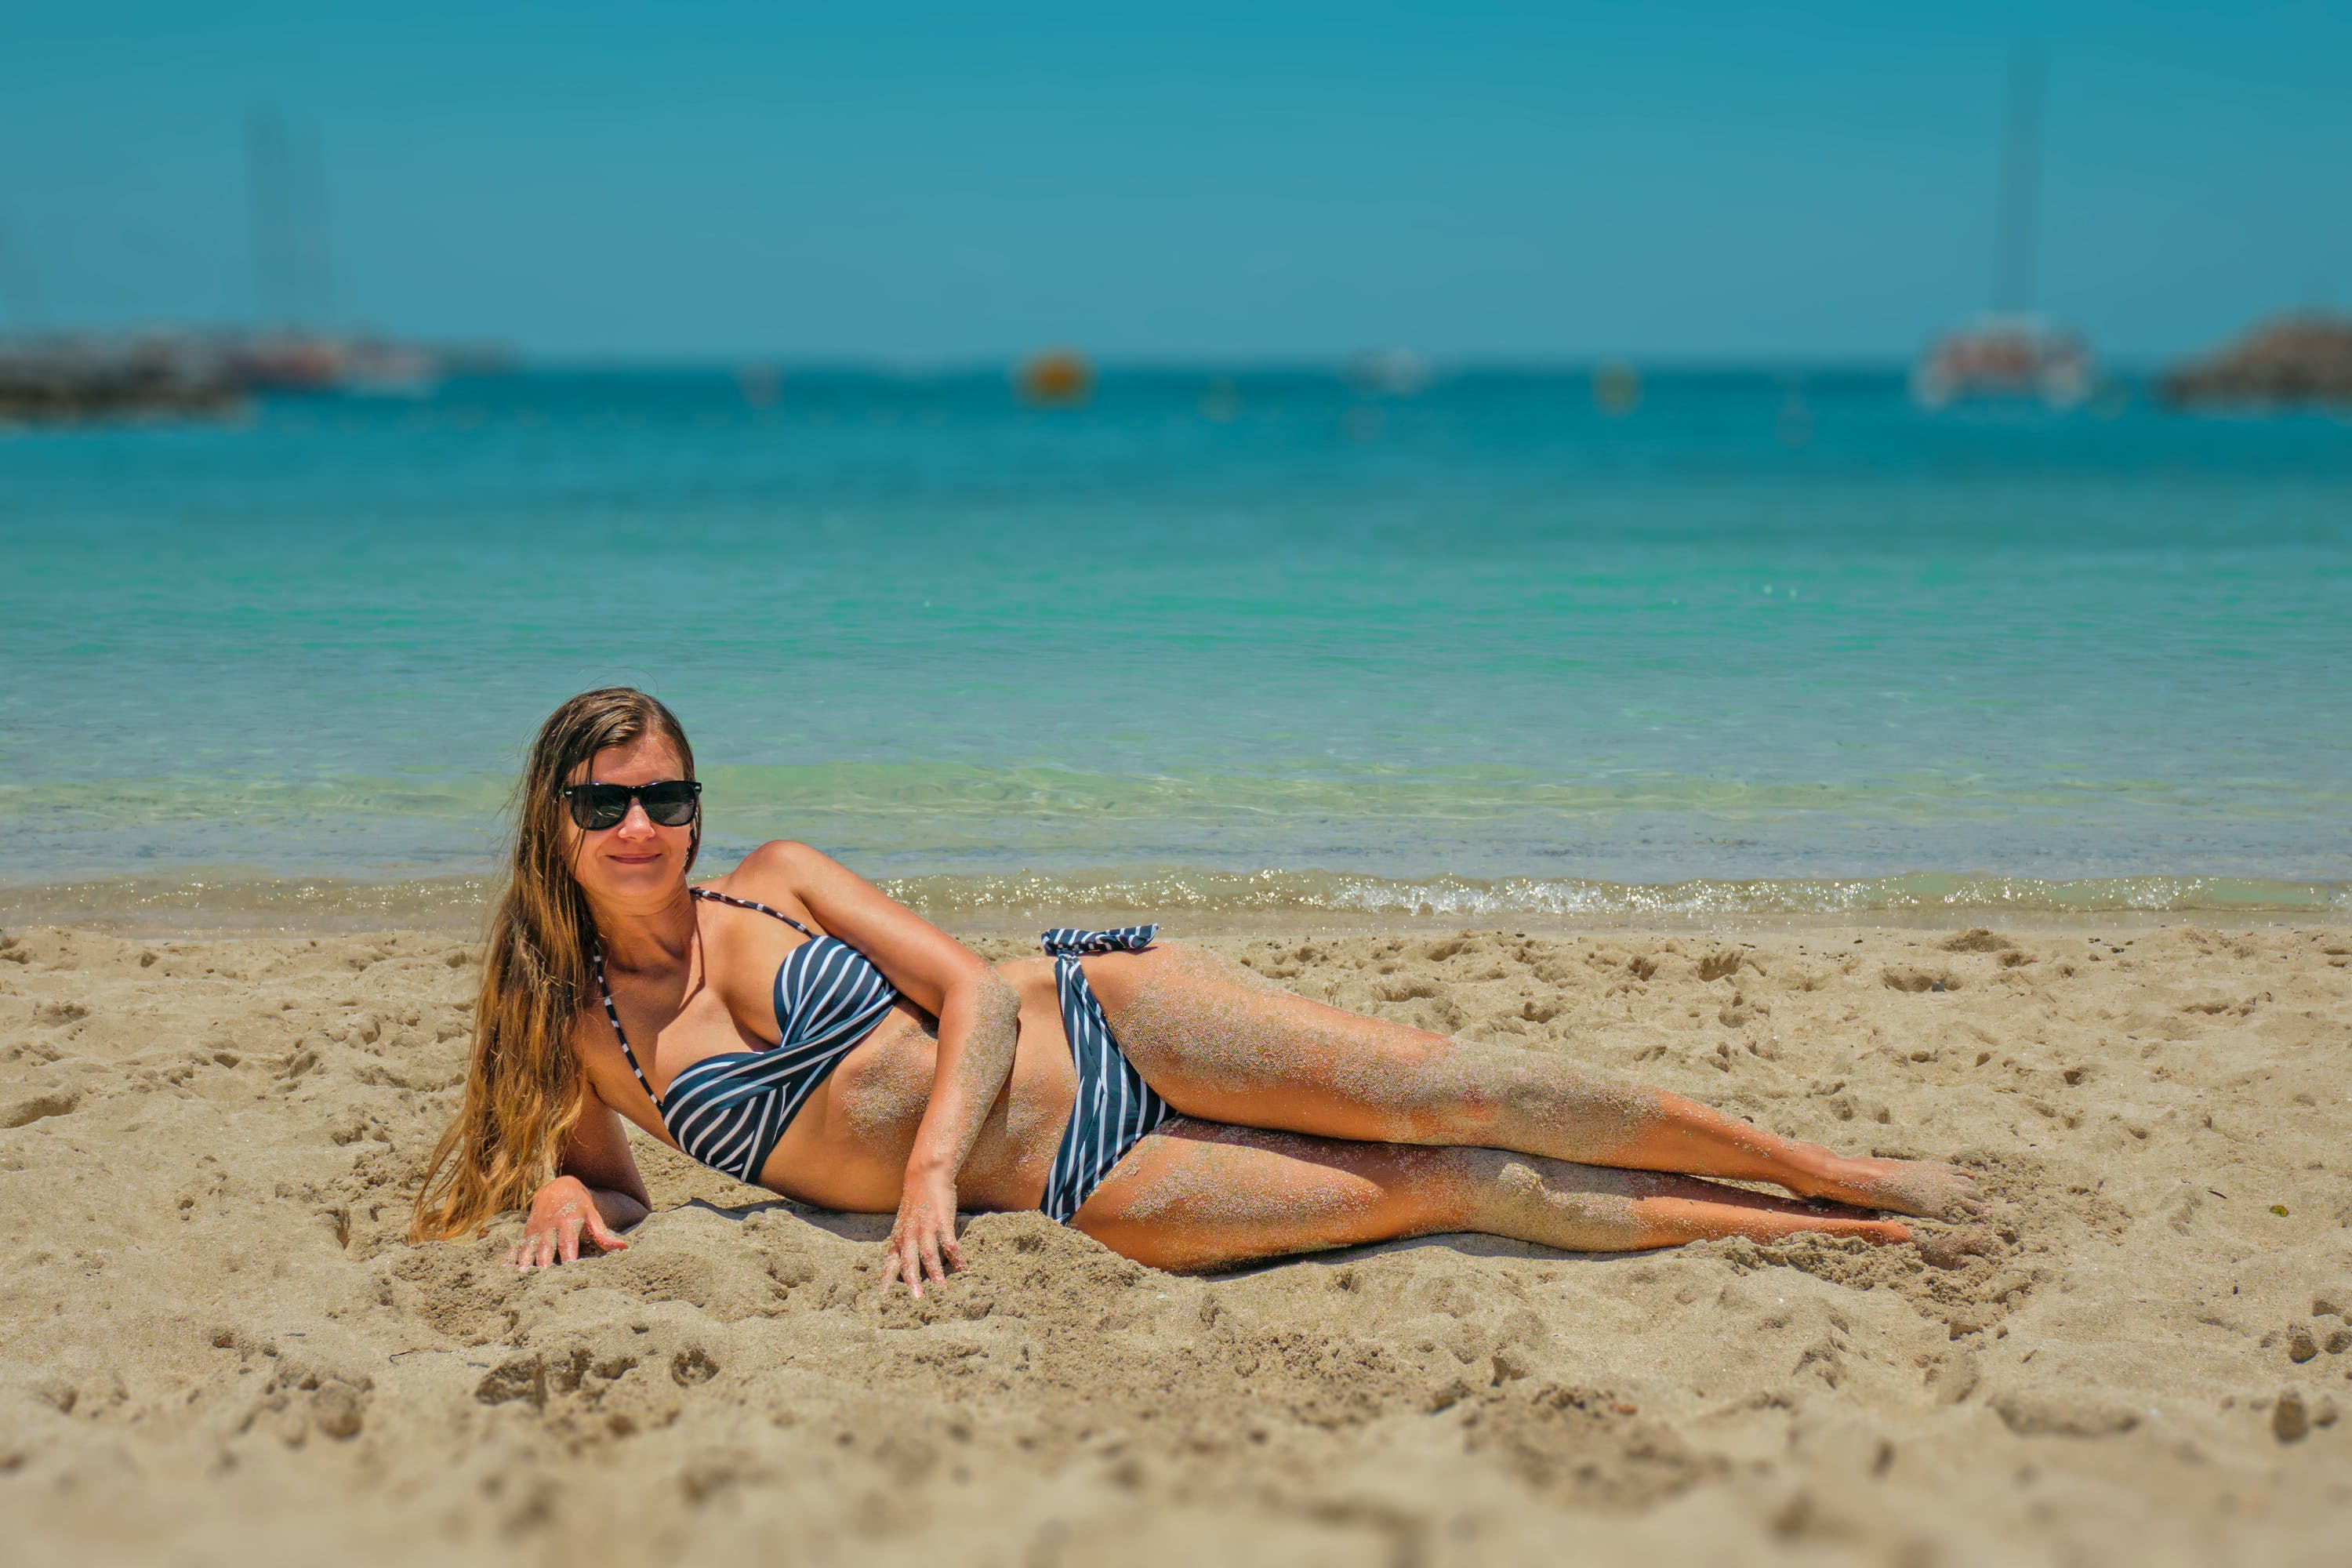 Woman in Blue and Black Bikini Lying on Beach Sand